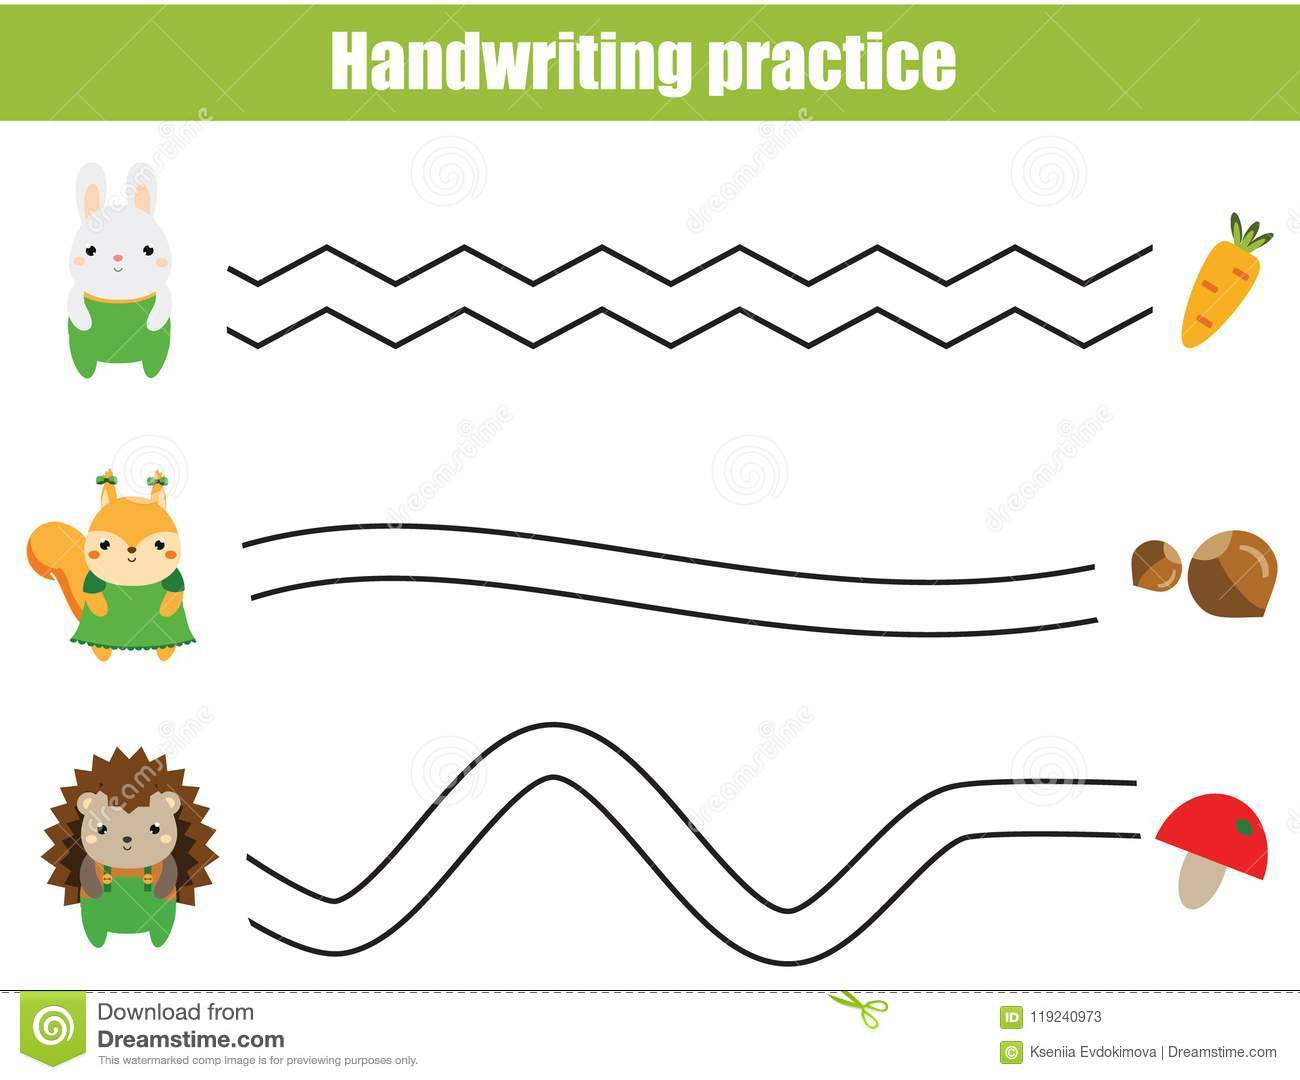 Handwriting Practice Sheet Educational Children Game Printable Worksheet For Kids Help